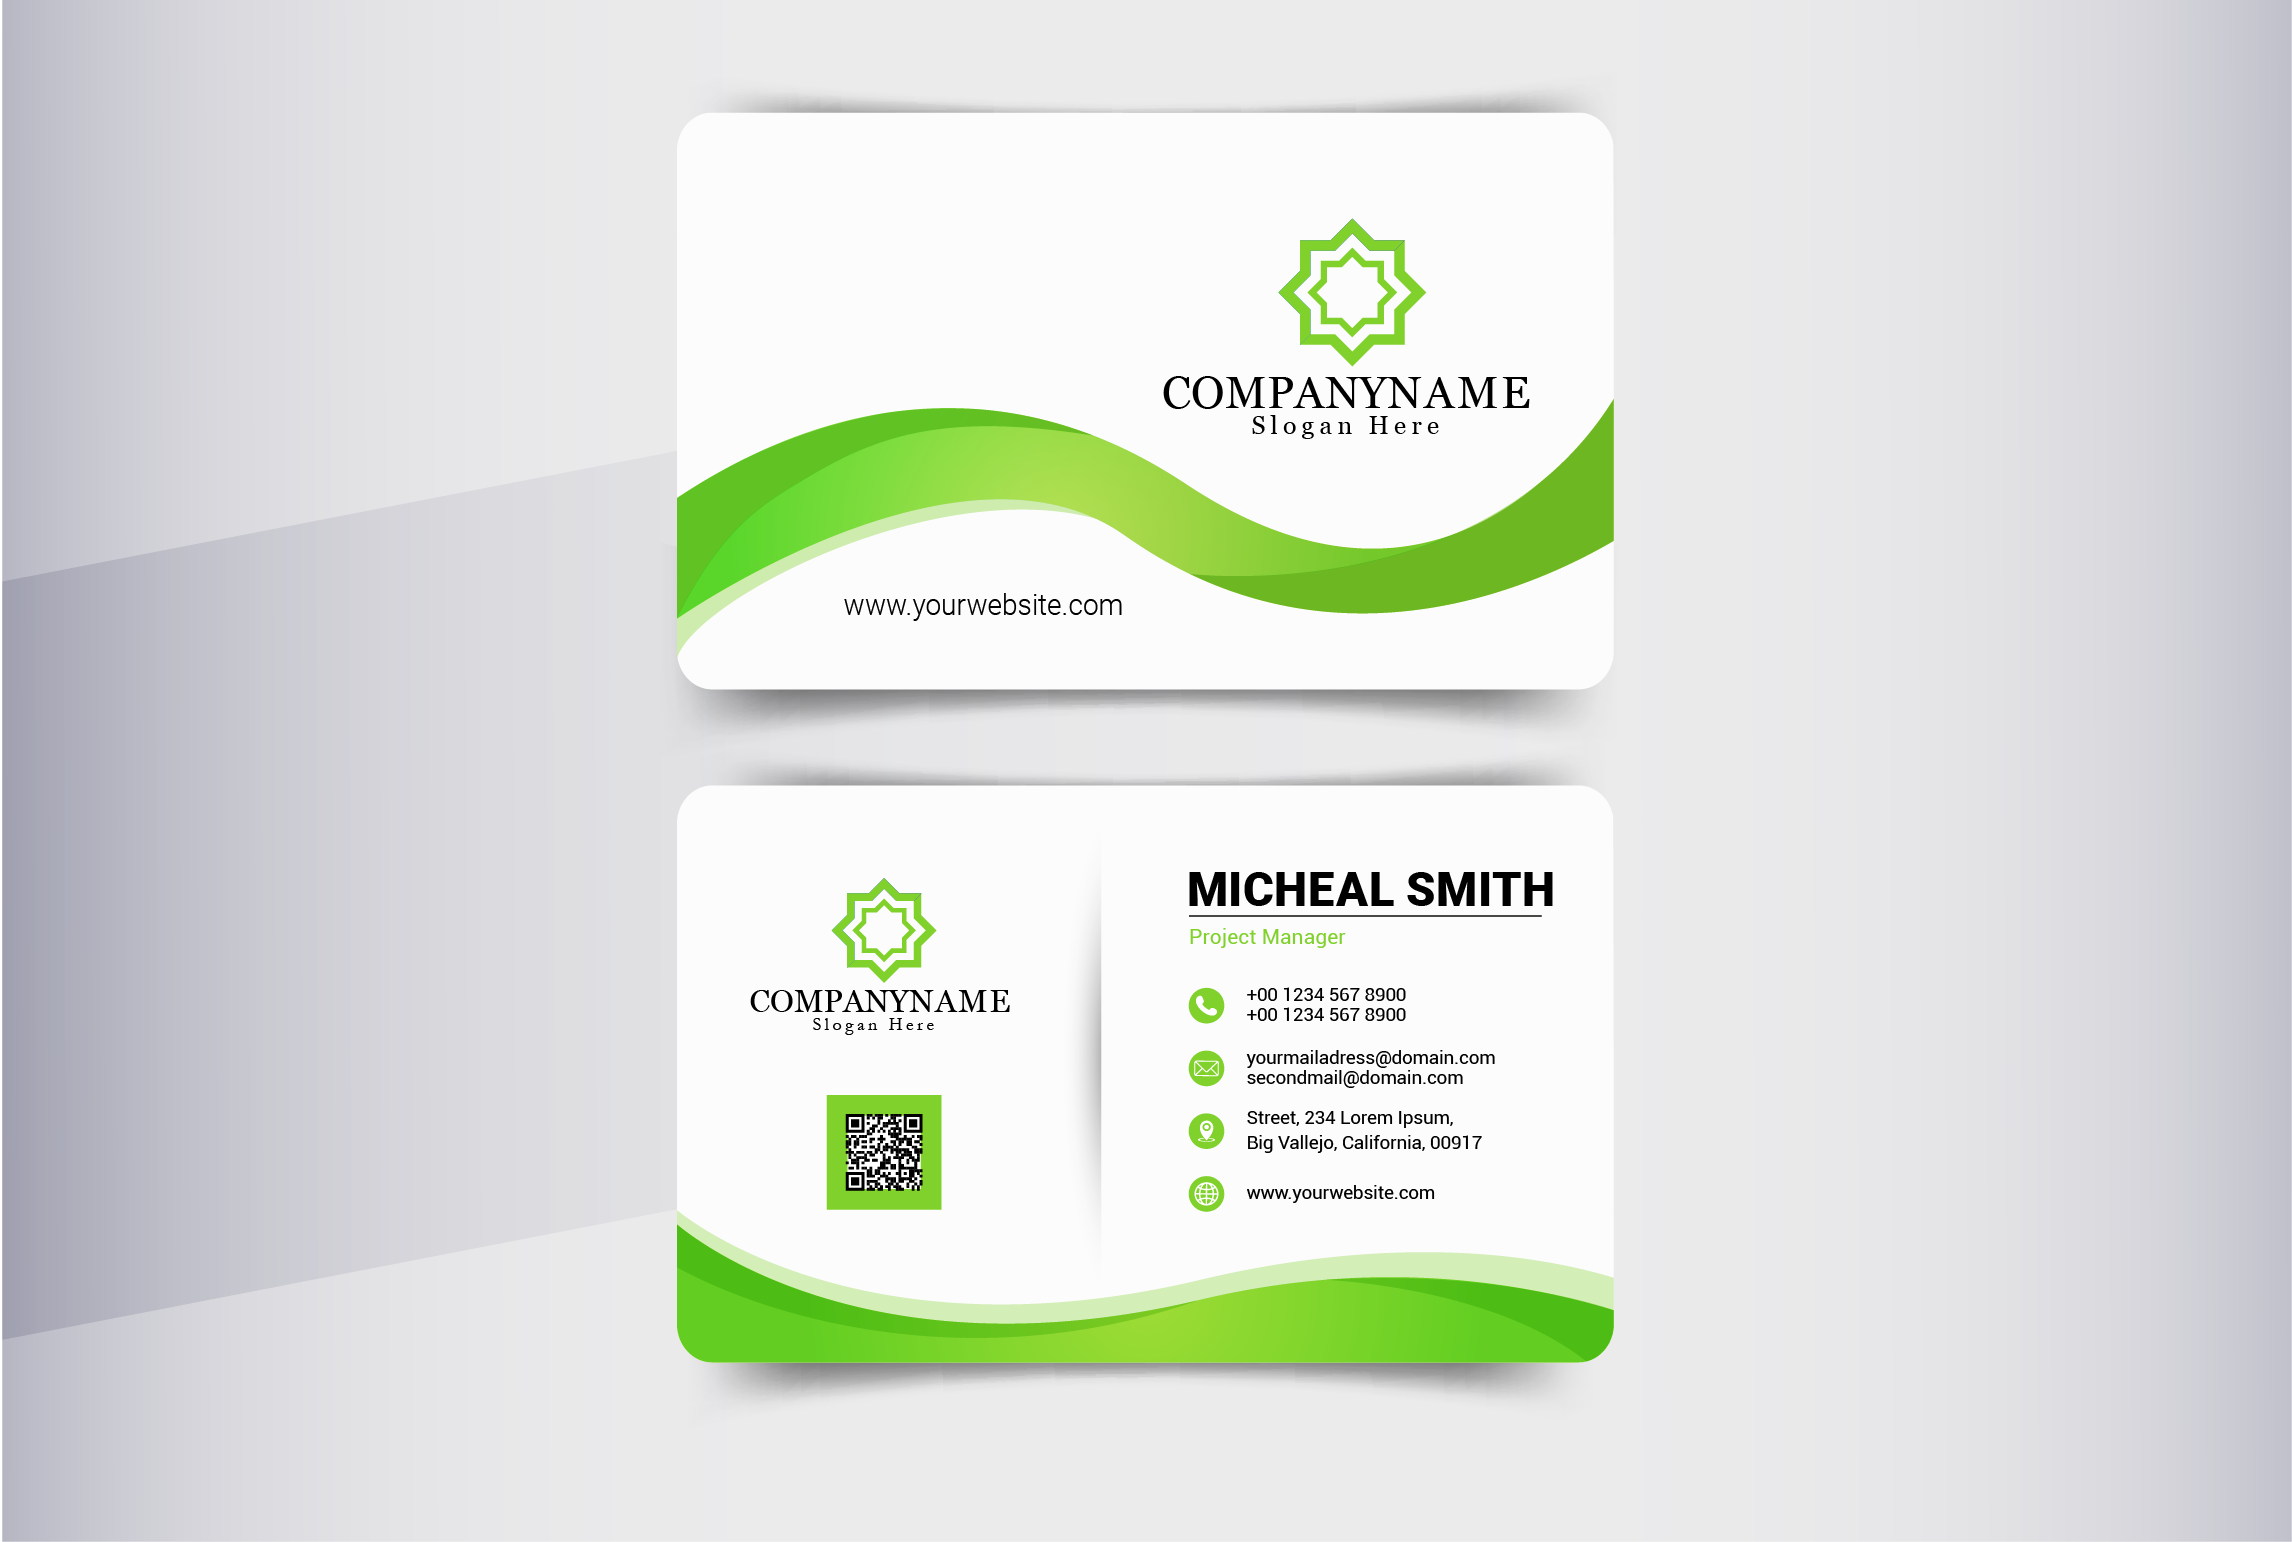 I will design modern business card with mocup